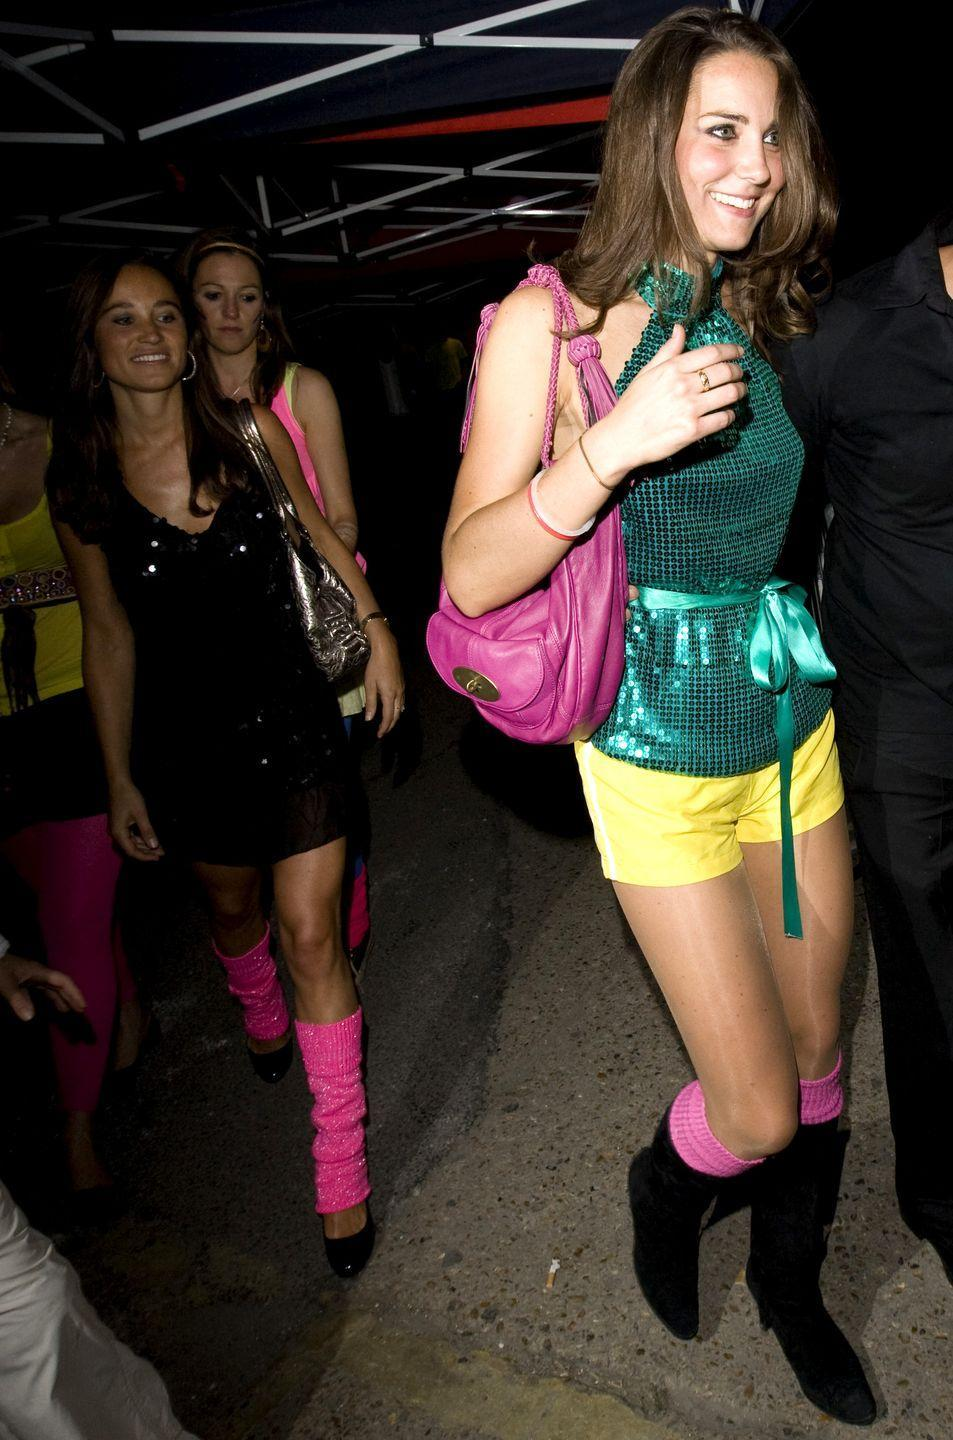 """<p>During her separation from Prince William, Kate—who was still very much in the public eye having dated a royal—was spotted attending a charity event in bright yellow shorts and a flashy green sequin top. People, including the palace, were upset by her attire. According to the <em><a href=""""http://www.dailymail.co.uk/tvshowbiz/article-1058564/What-picture-tells-state-Kate-Middleton-Prince-Williams-romance.html"""" rel=""""nofollow noopener"""" target=""""_blank"""" data-ylk=""""slk:Daily Mail"""" class=""""link rapid-noclick-resp"""">Daily Mail</a></em>, Buckingham Palace courtiers were """"appalled"""" by Kate's appearance, and said it was the """"most unladylike display"""" they'd ever seen. More photos show Kate on the ground, wearing roller skates, and laughing hysterically. </p>"""